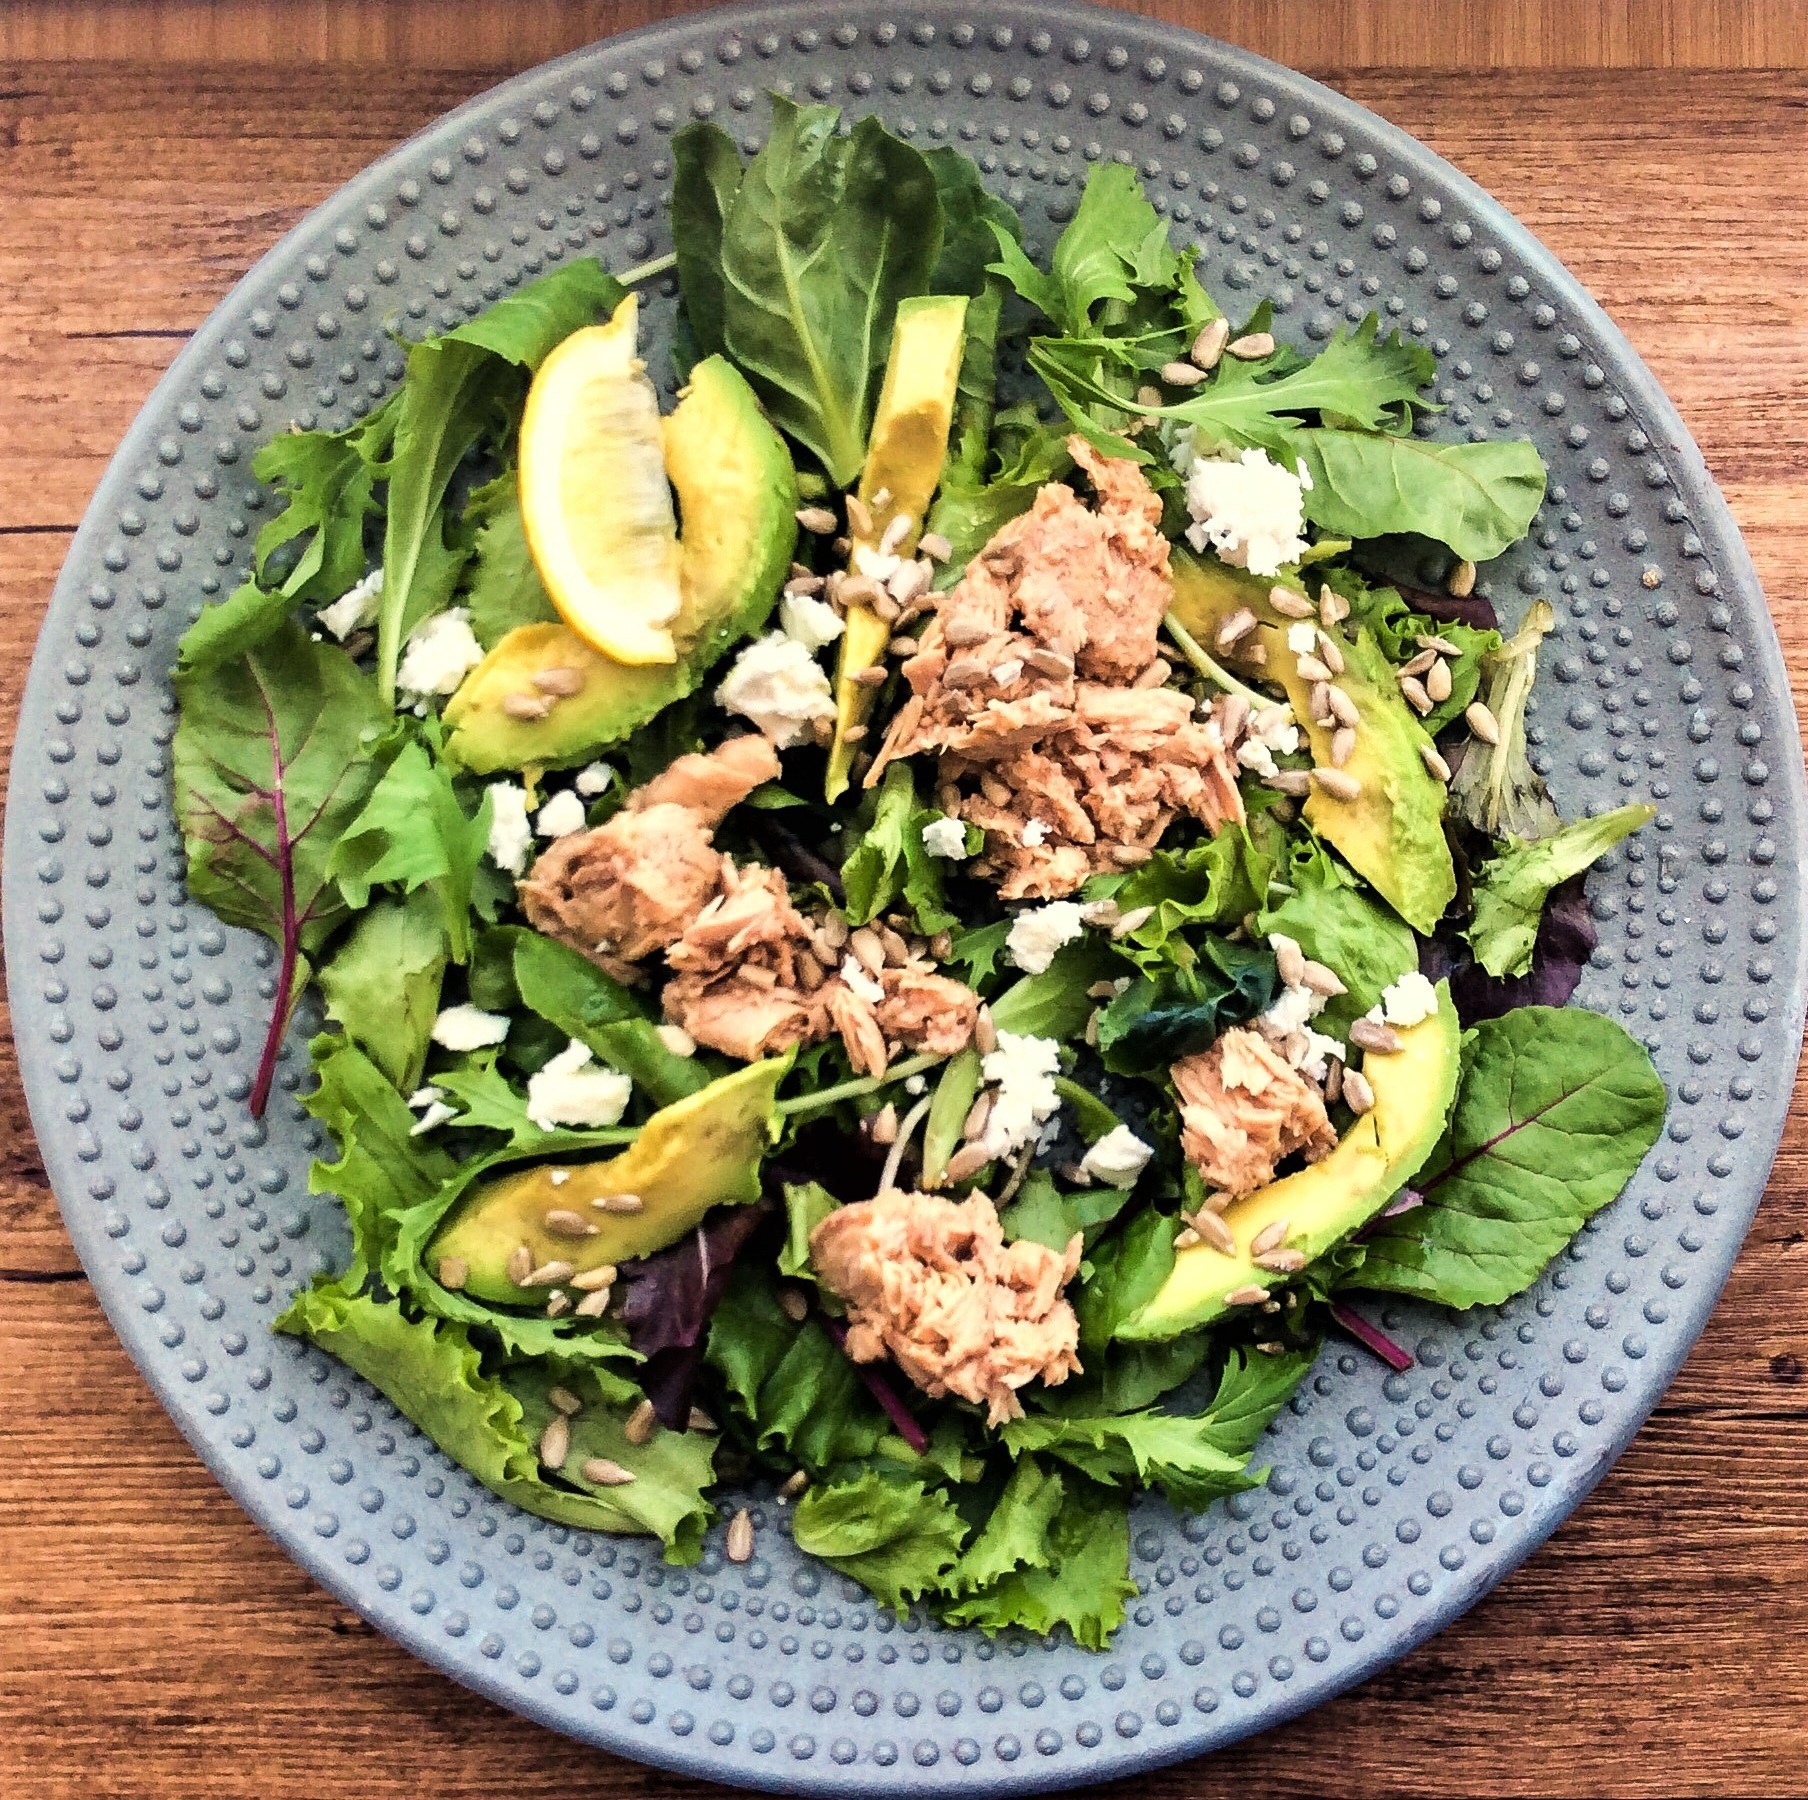 Avocado Tuna Feta Salad by Lea Hogg